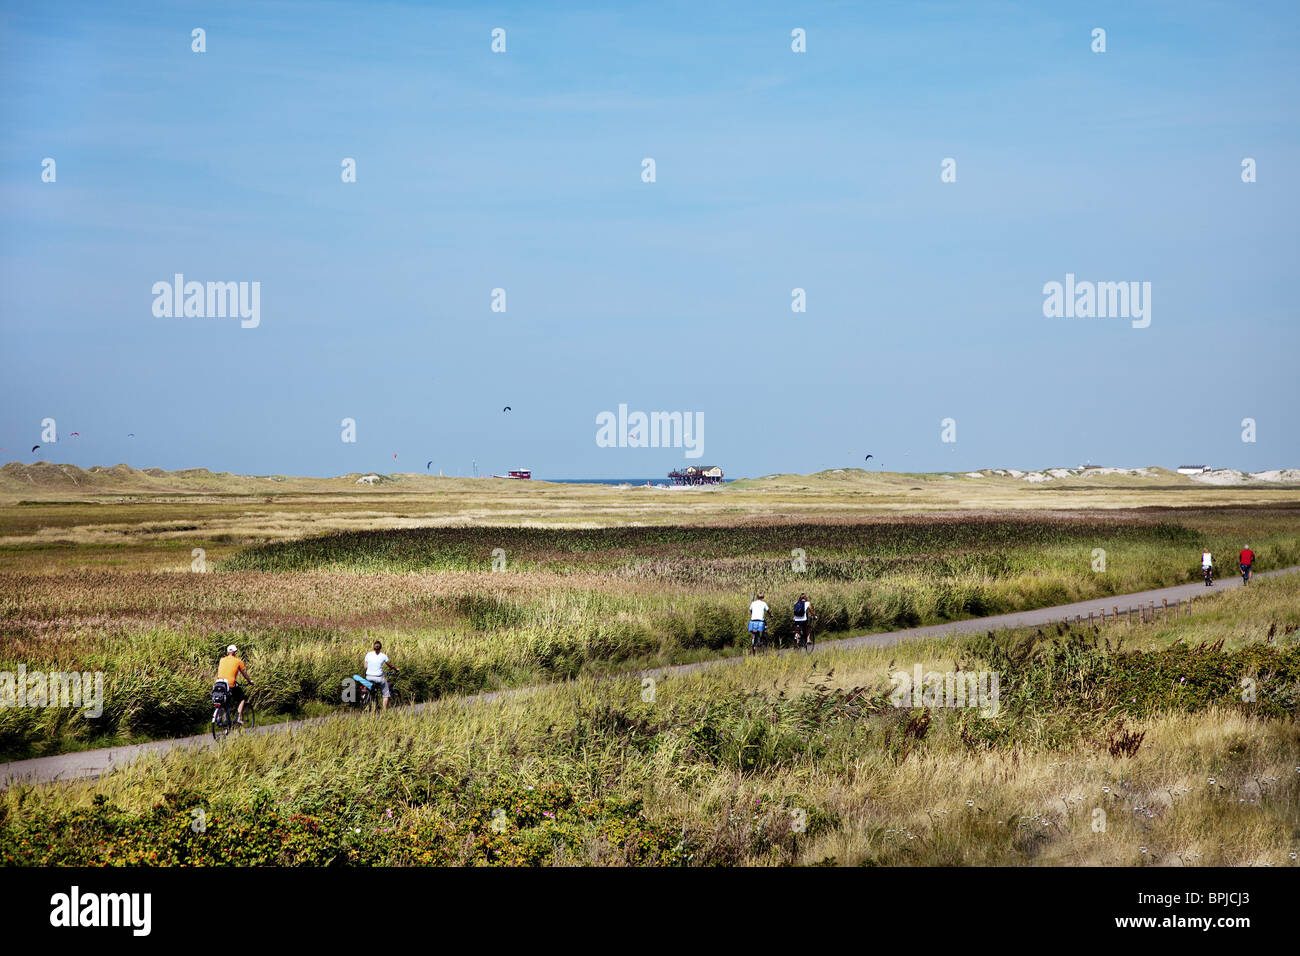 Cycle way through dunes, St. Peter-Ording, Schleswig-Holstein, Germany - Stock Image